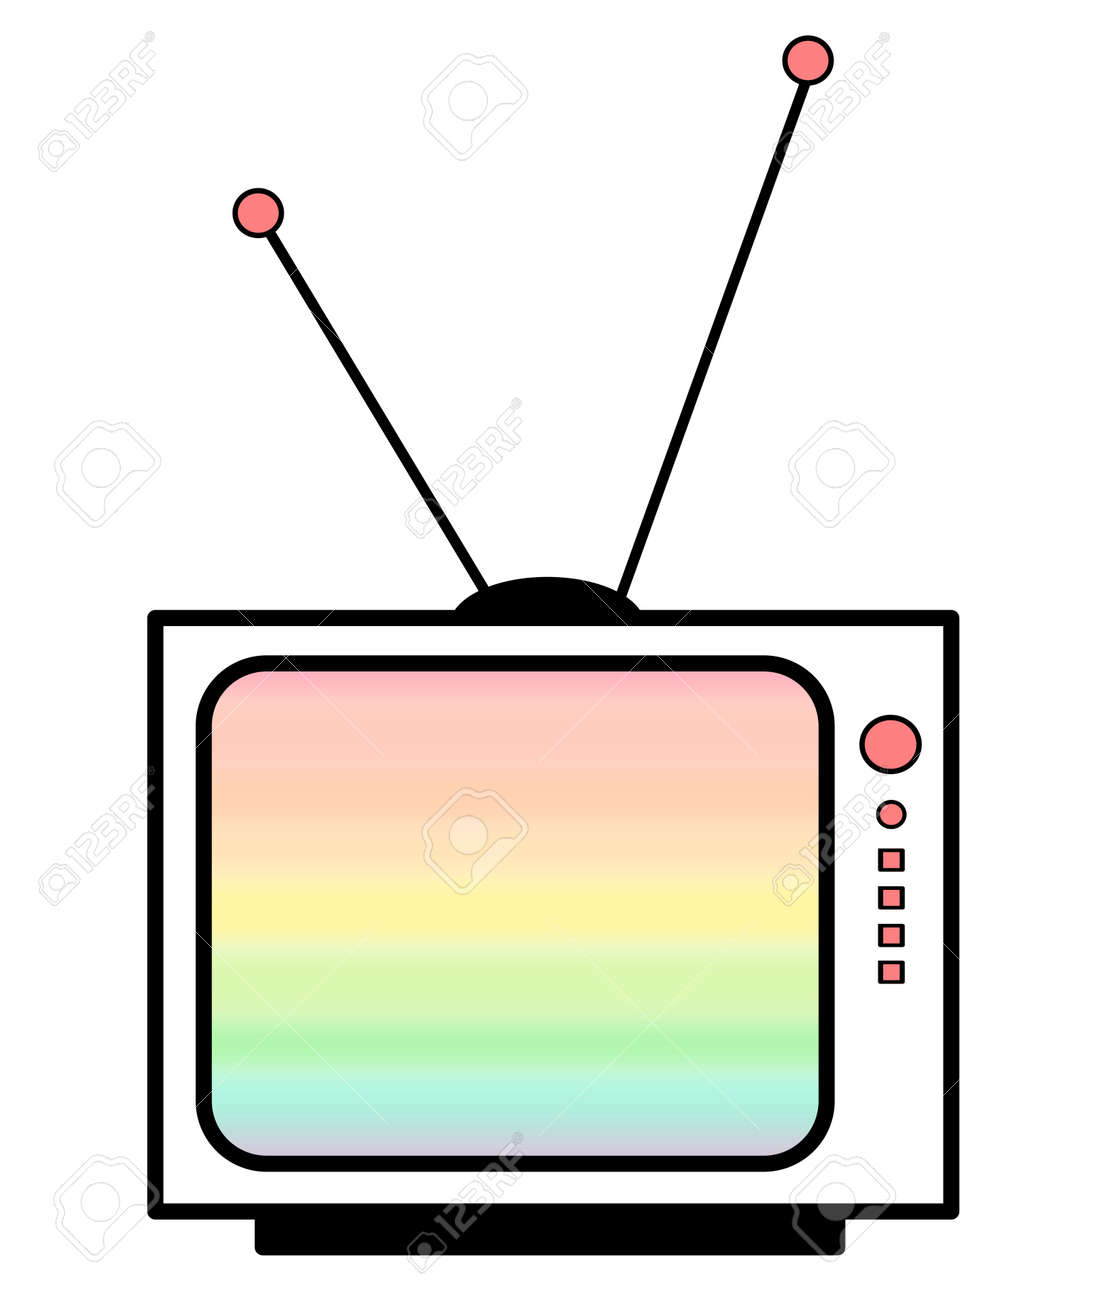 Rainbow Cute Cartoon Tv Illustration Stock Photo Picture And Royalty Free Image Image 62160871